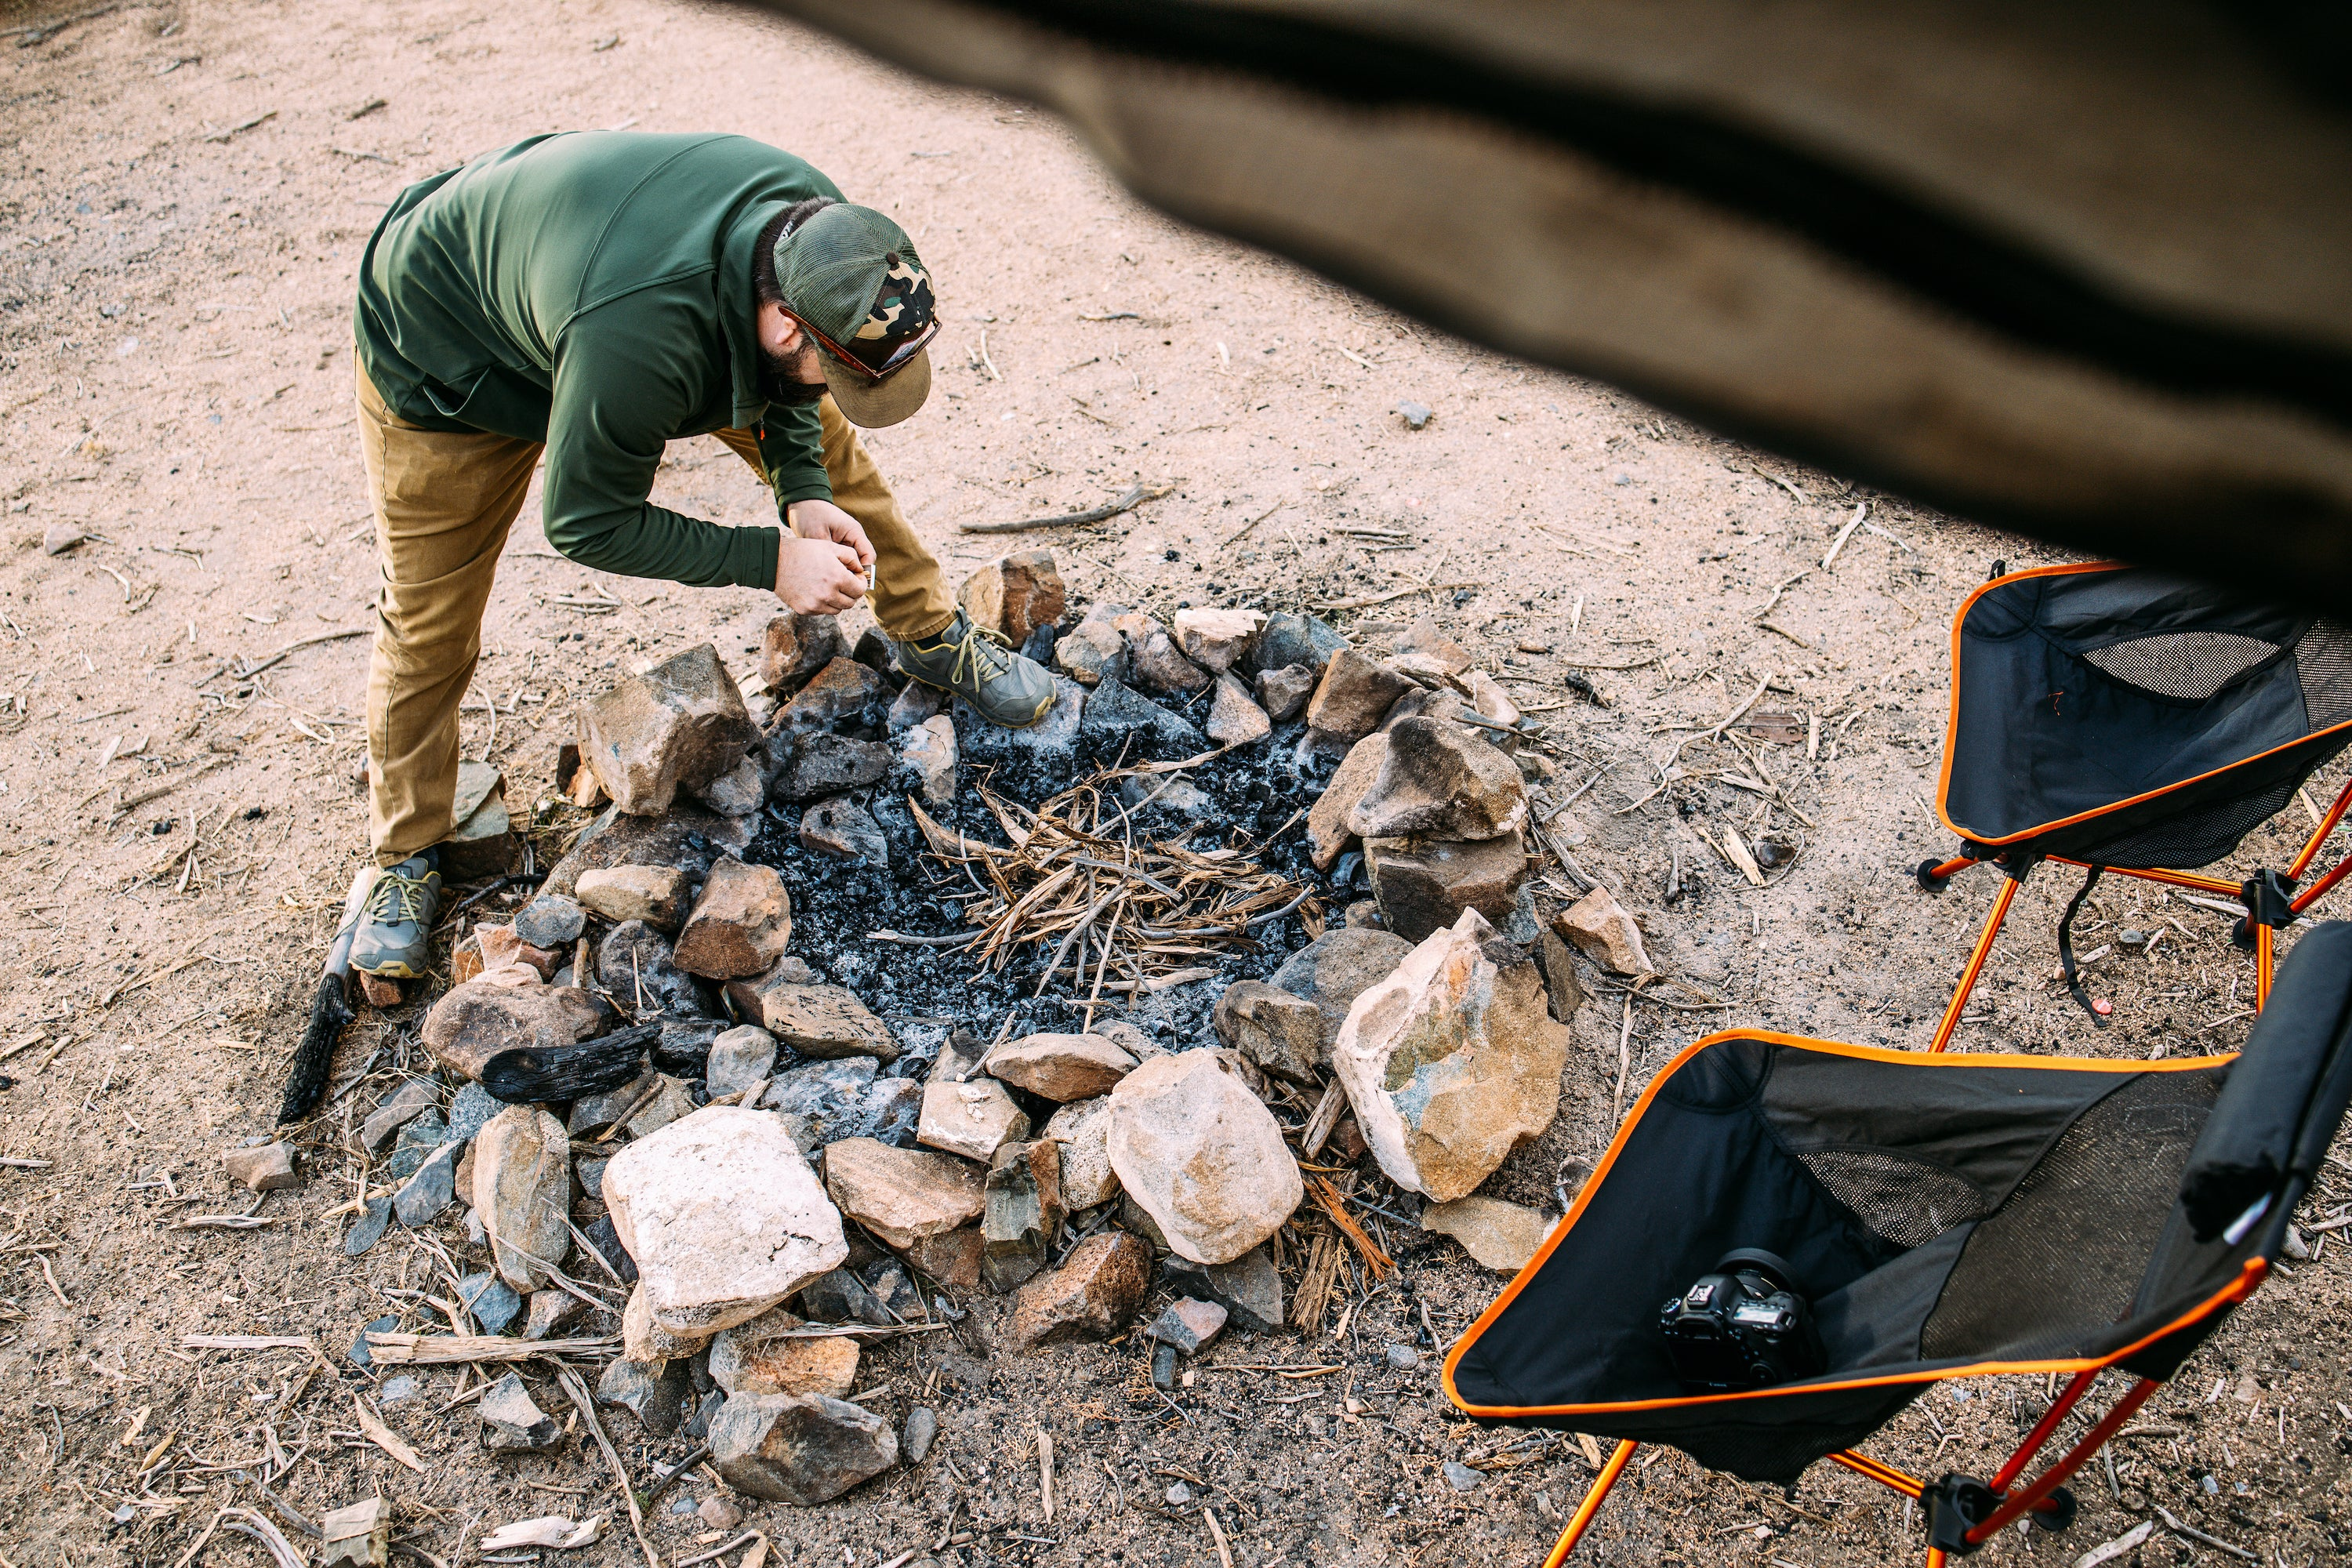 10 Tips for Winter Camping in the Desert - Desert Camping Fire Pit